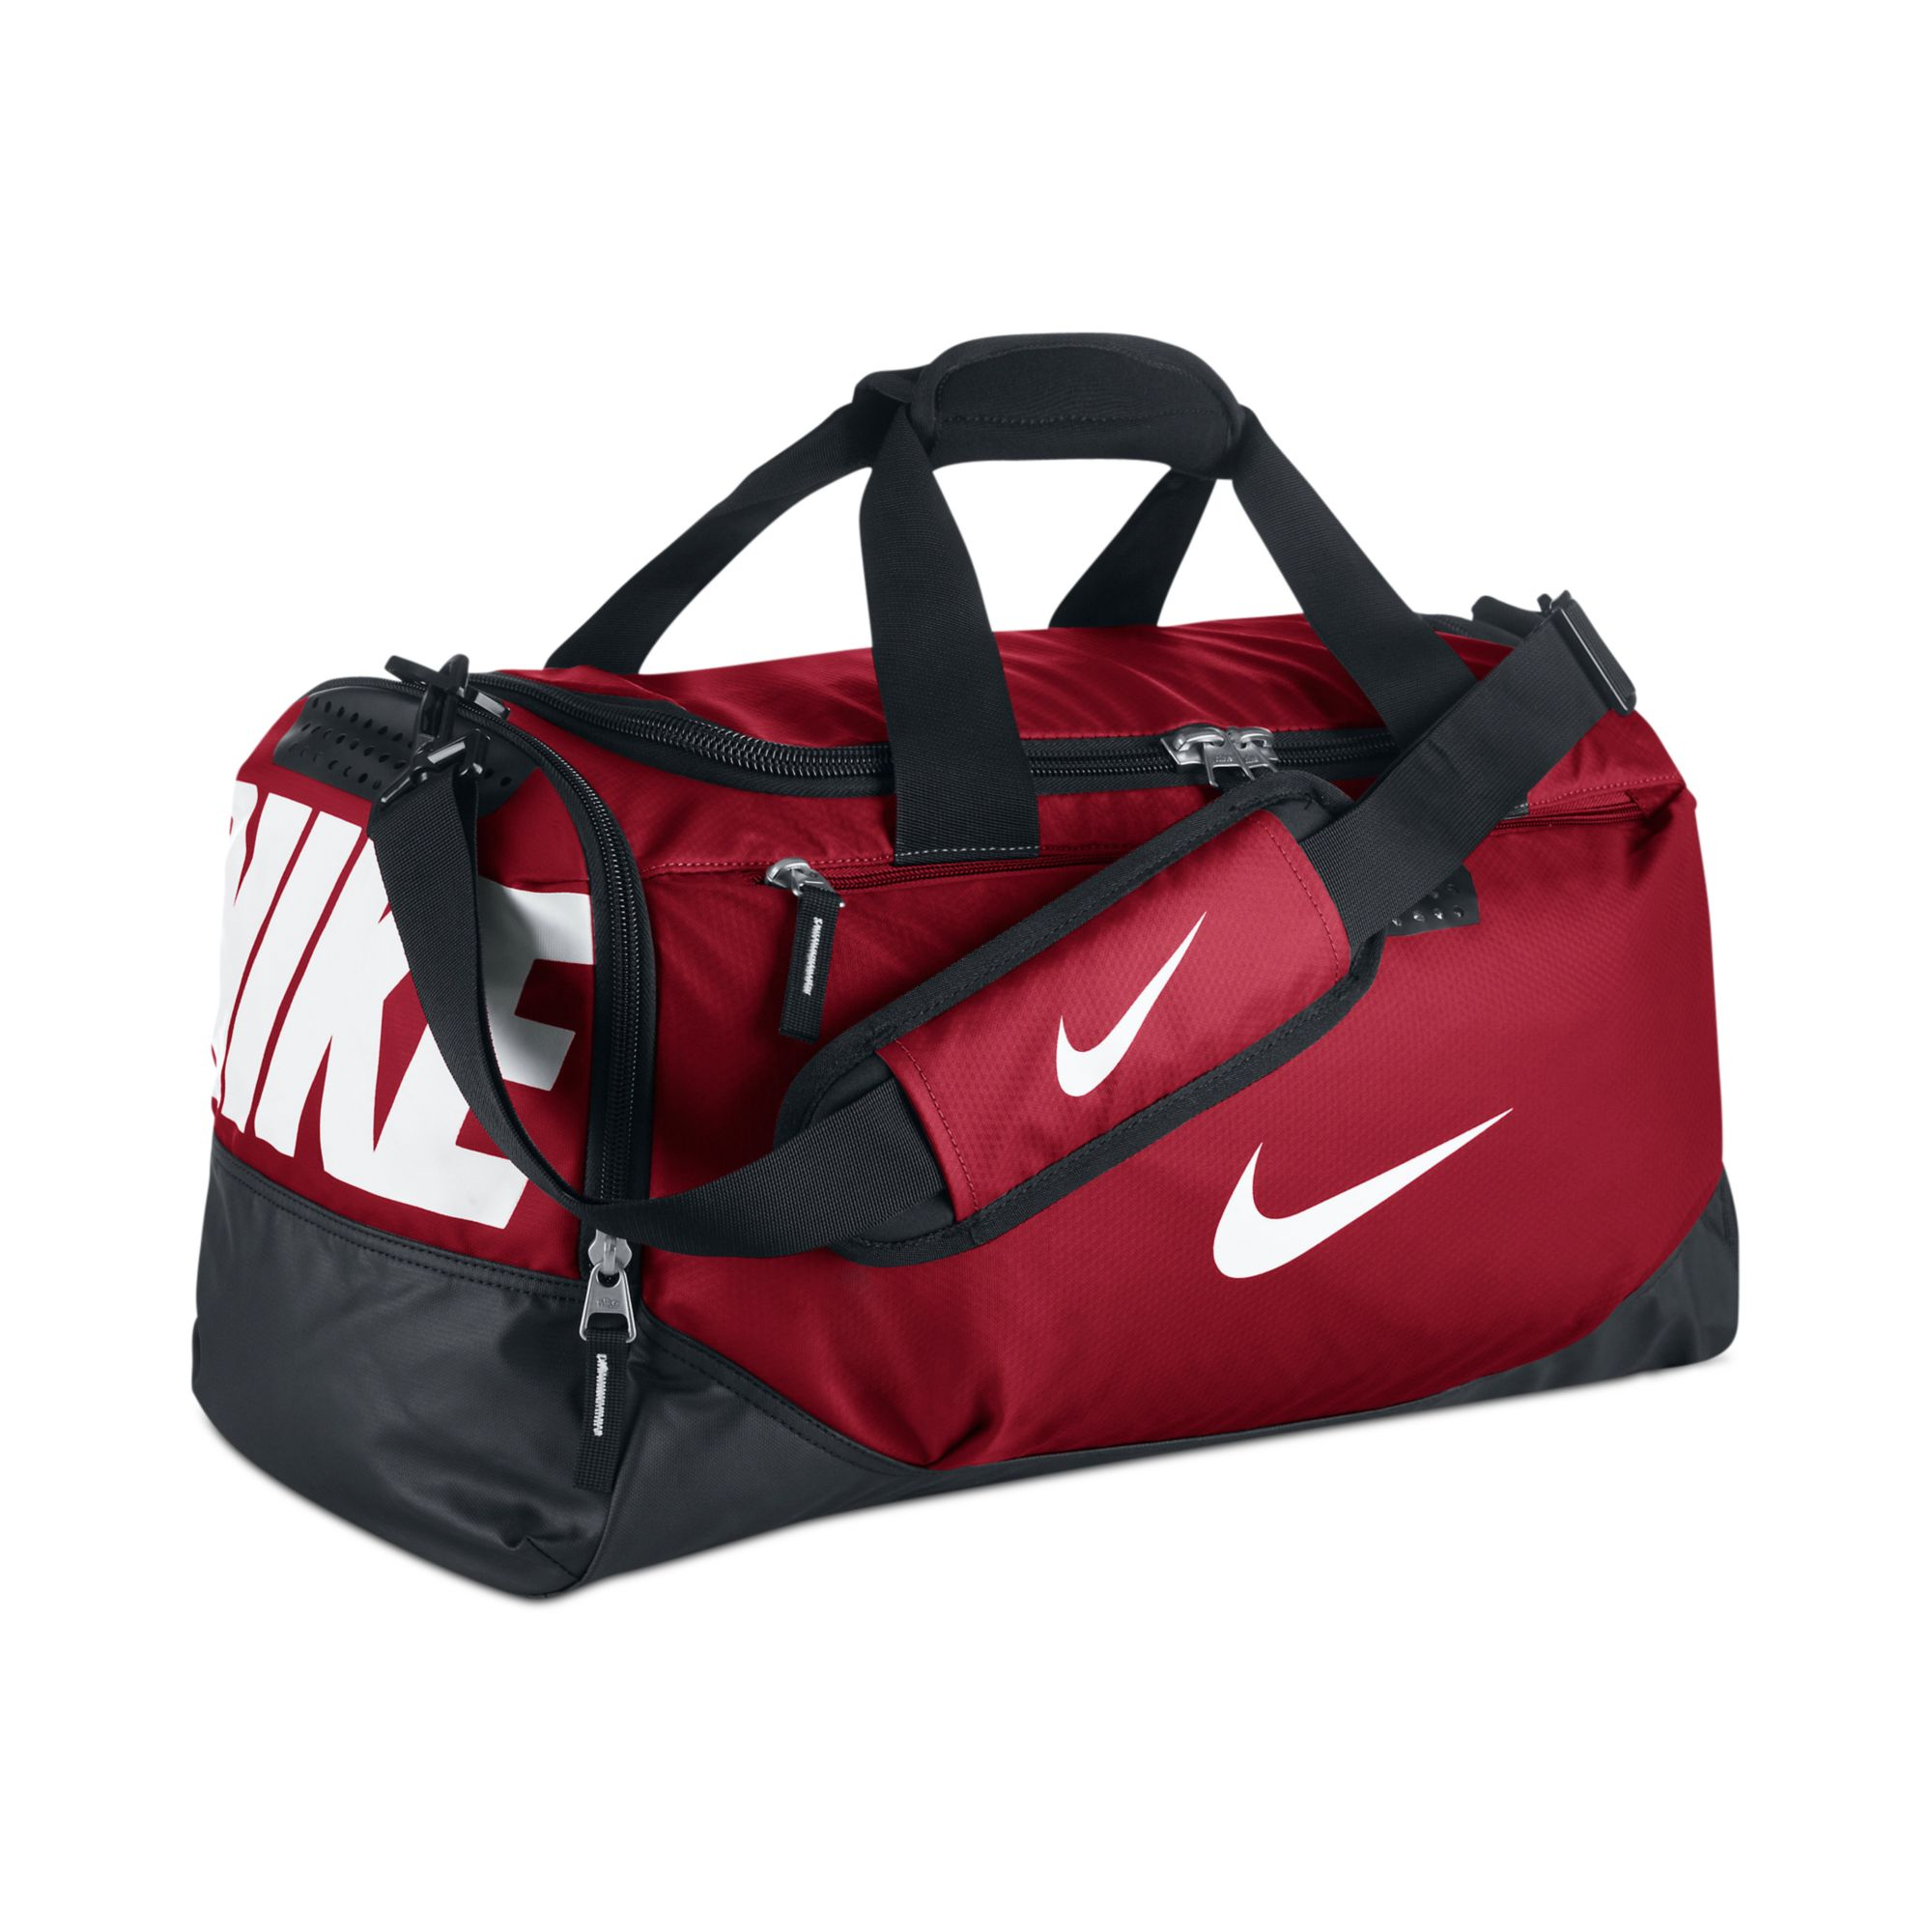 Lyst - Nike Team Training Small Duffle in Red for Men 59b35174e1